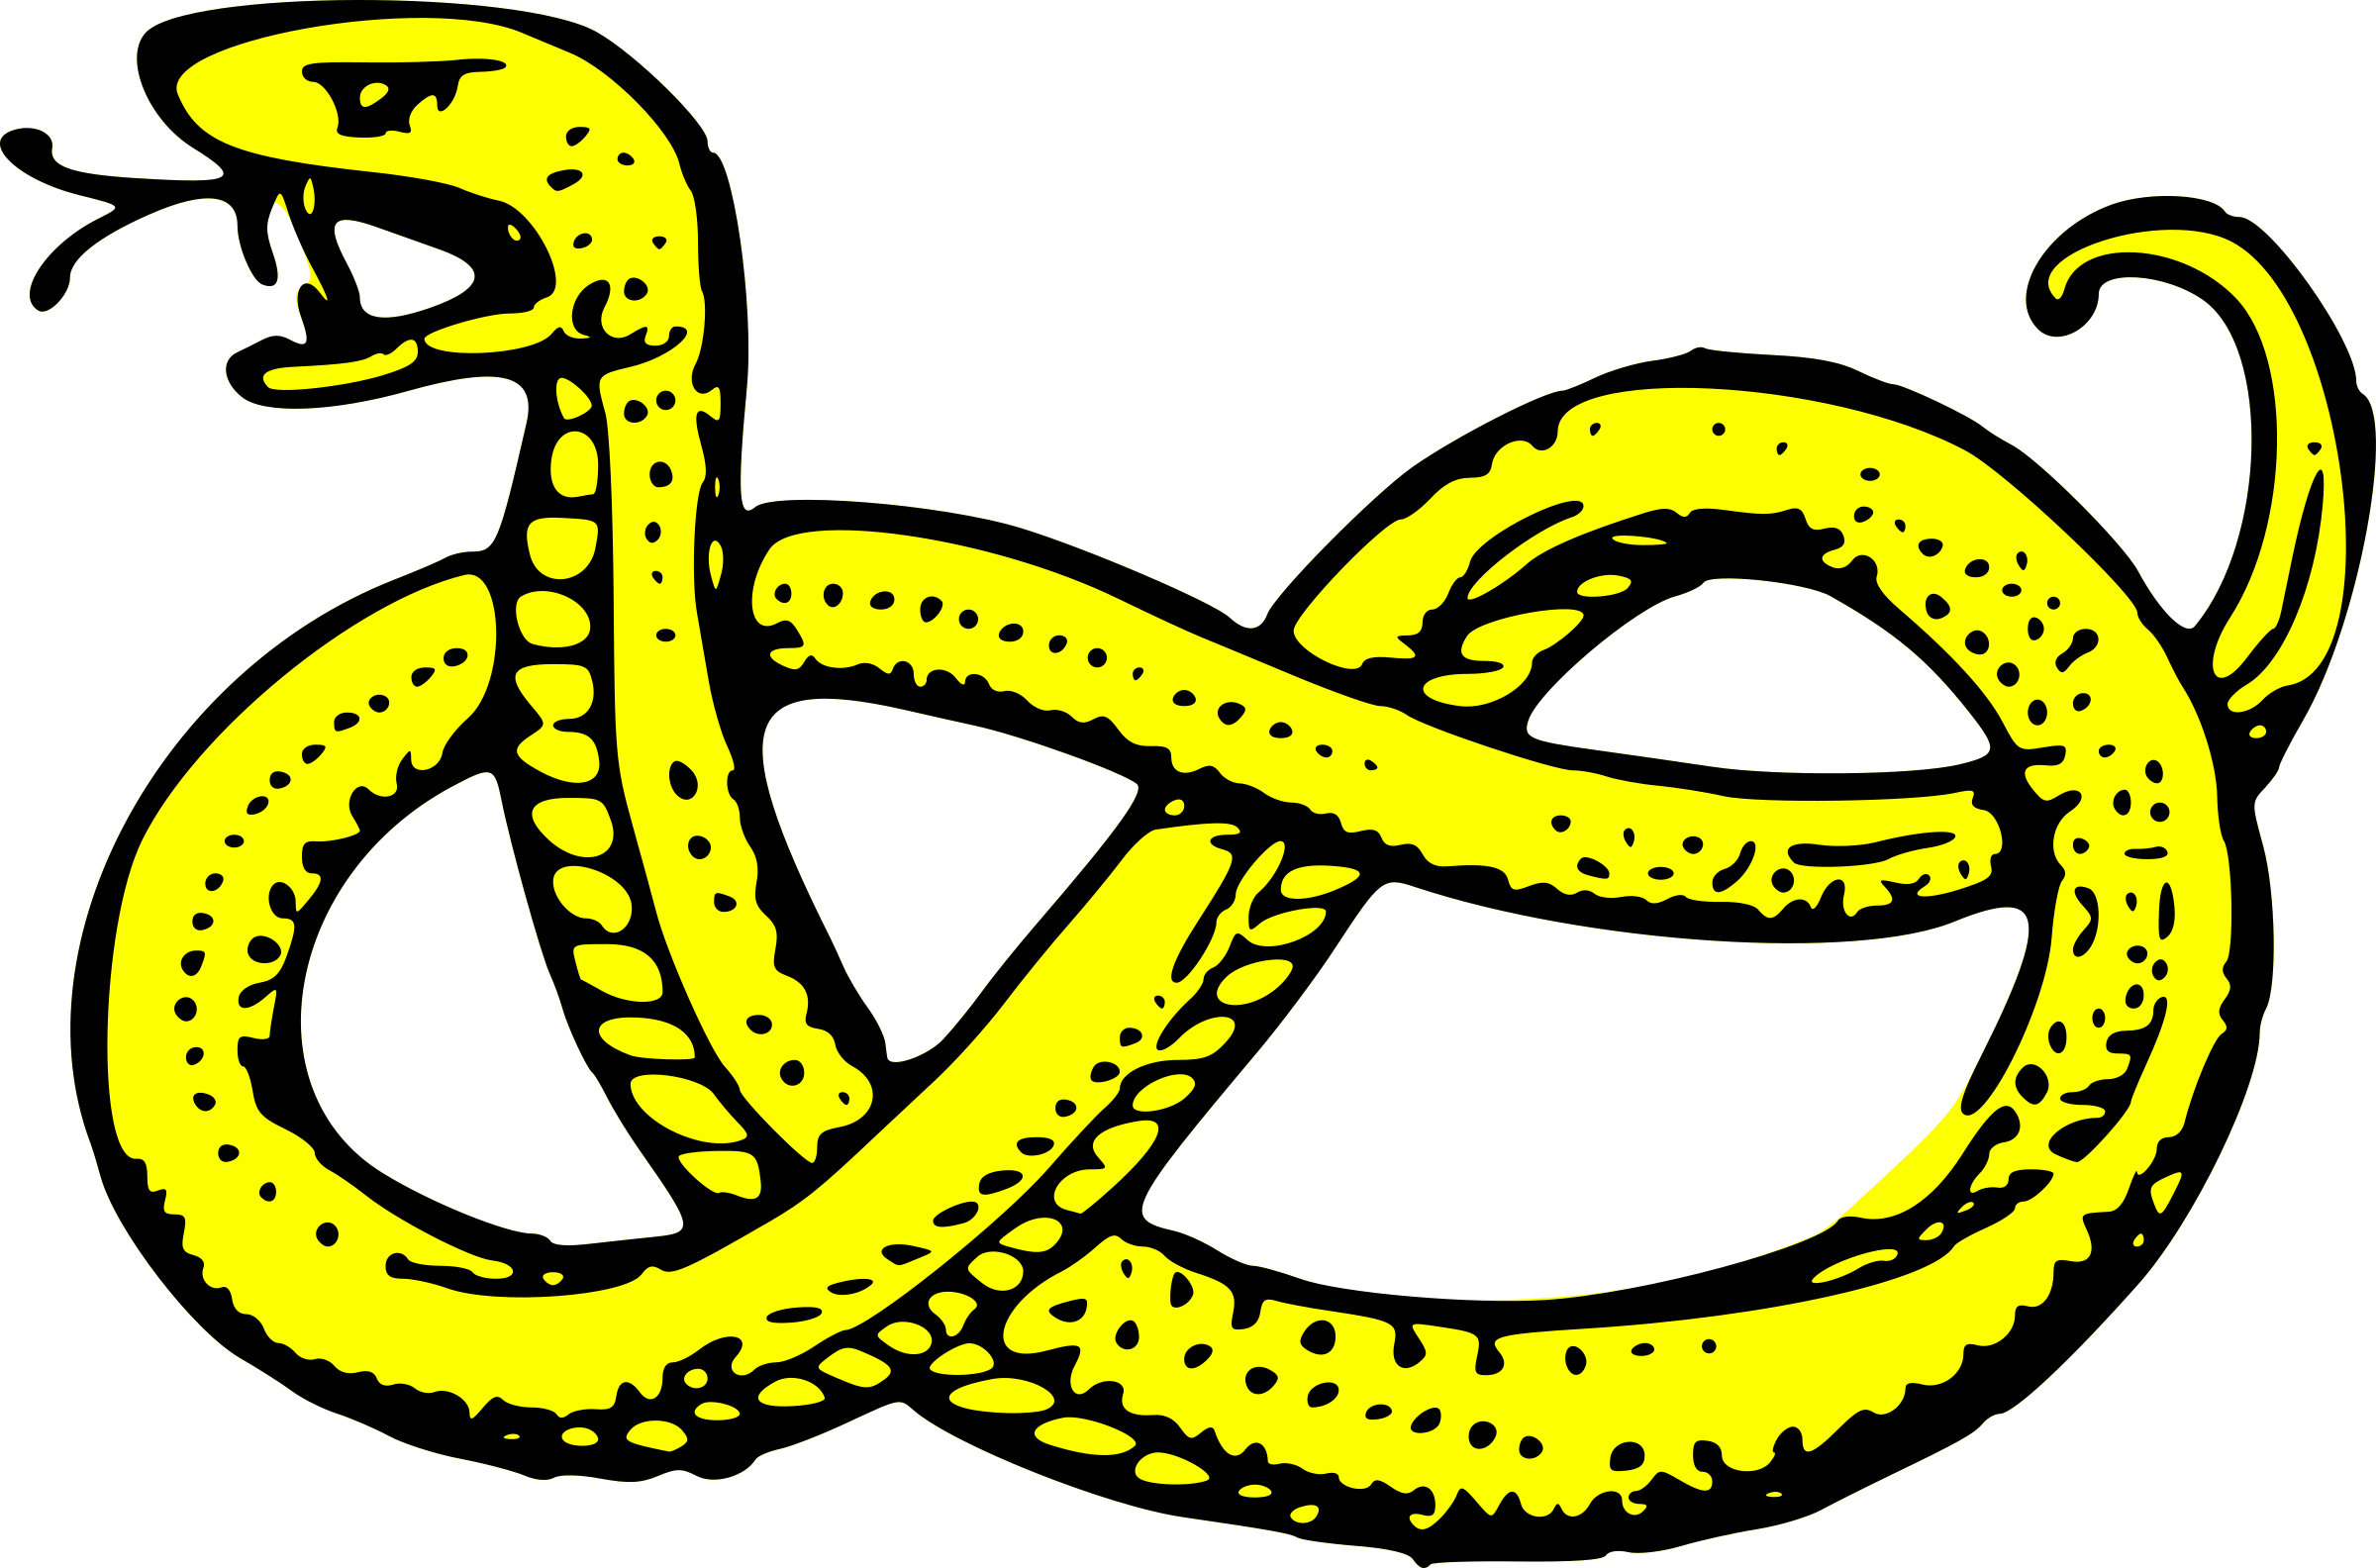 Serpent clipart Serpent serpent nowed Clipart nowed